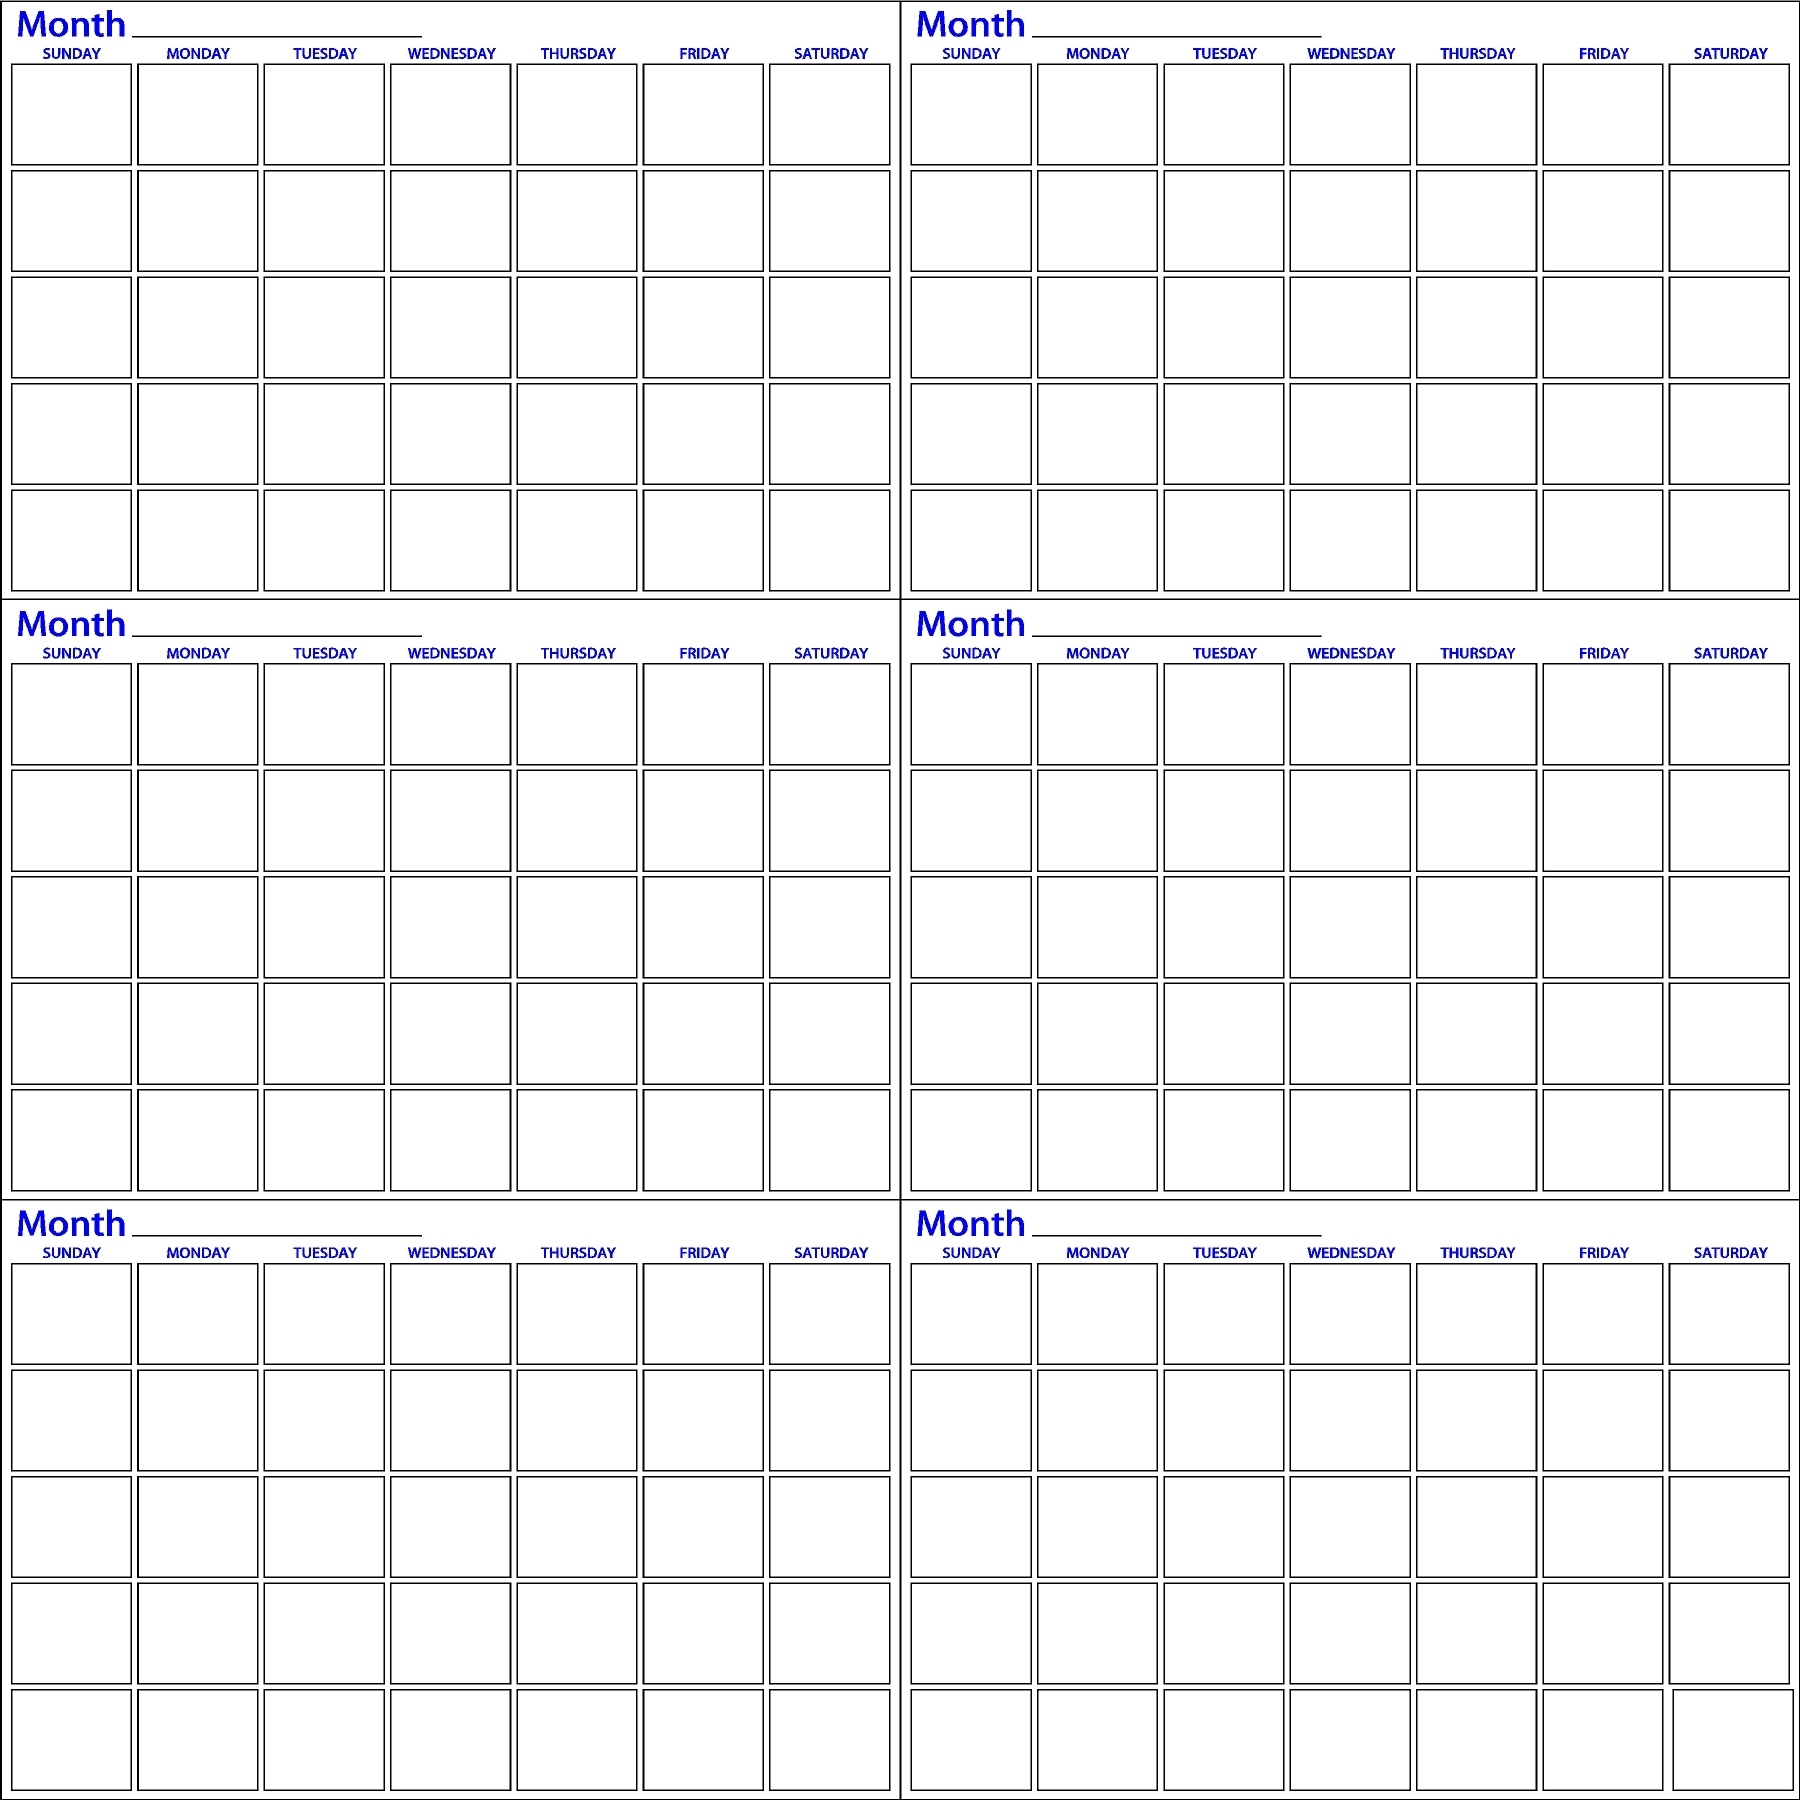 Six Month | Calendar Whiteboard | Dry Erase Innovations 2 Month Calendar Whiteboard